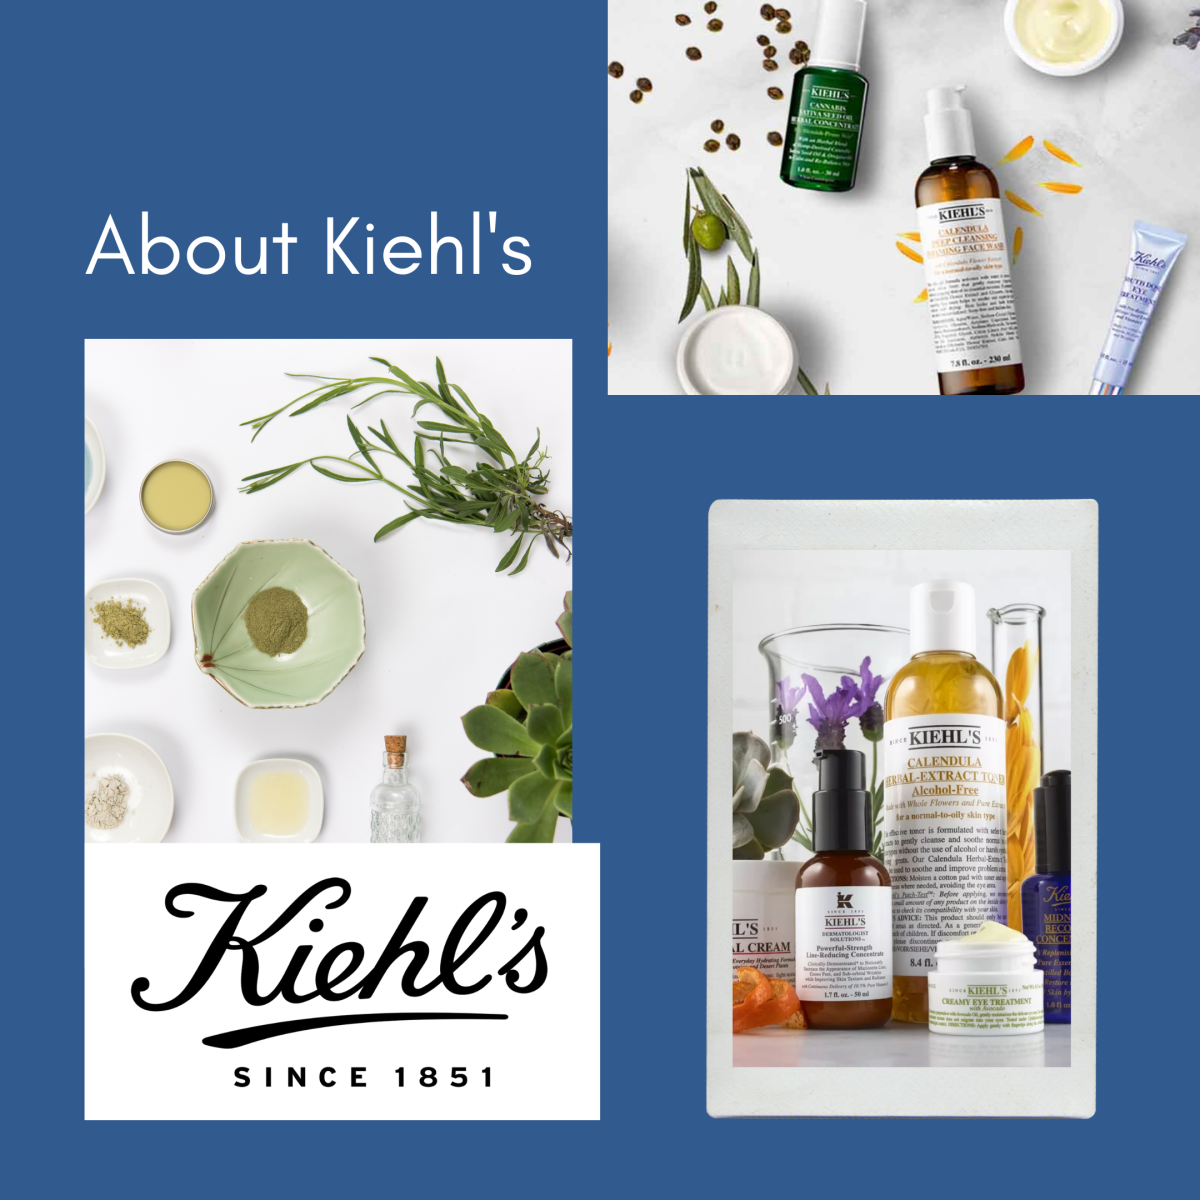 kiehls-ultimate-strength-hand-salve-review